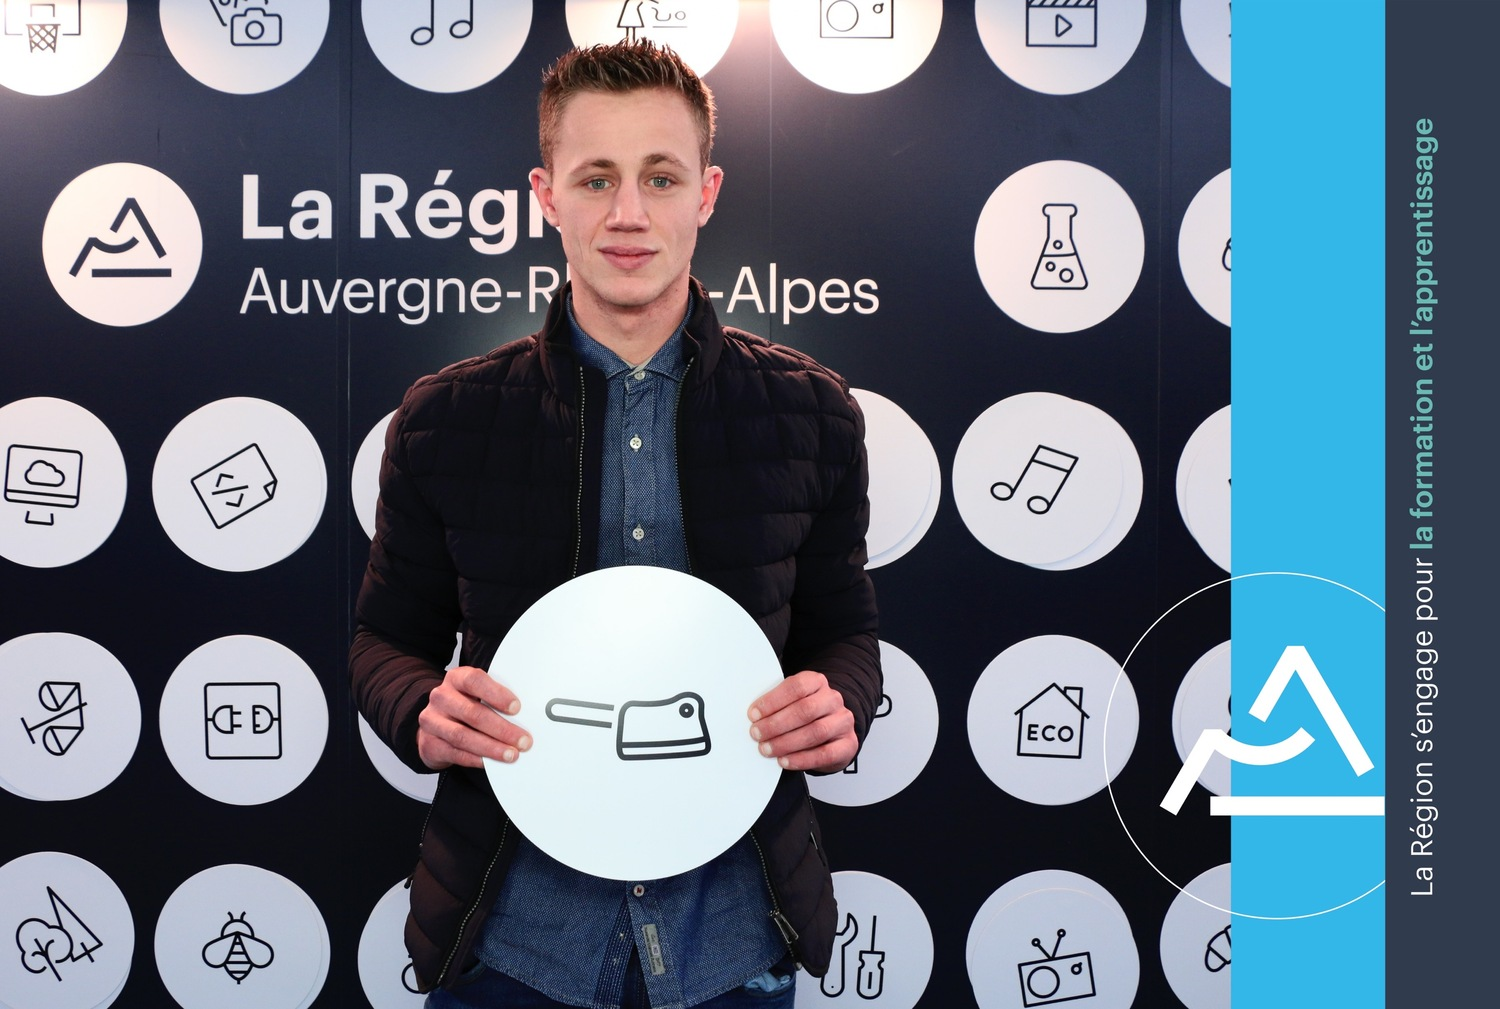 Lucas Bayle Talent De L Apprentissage Sur Le Photocall De La RC Gion